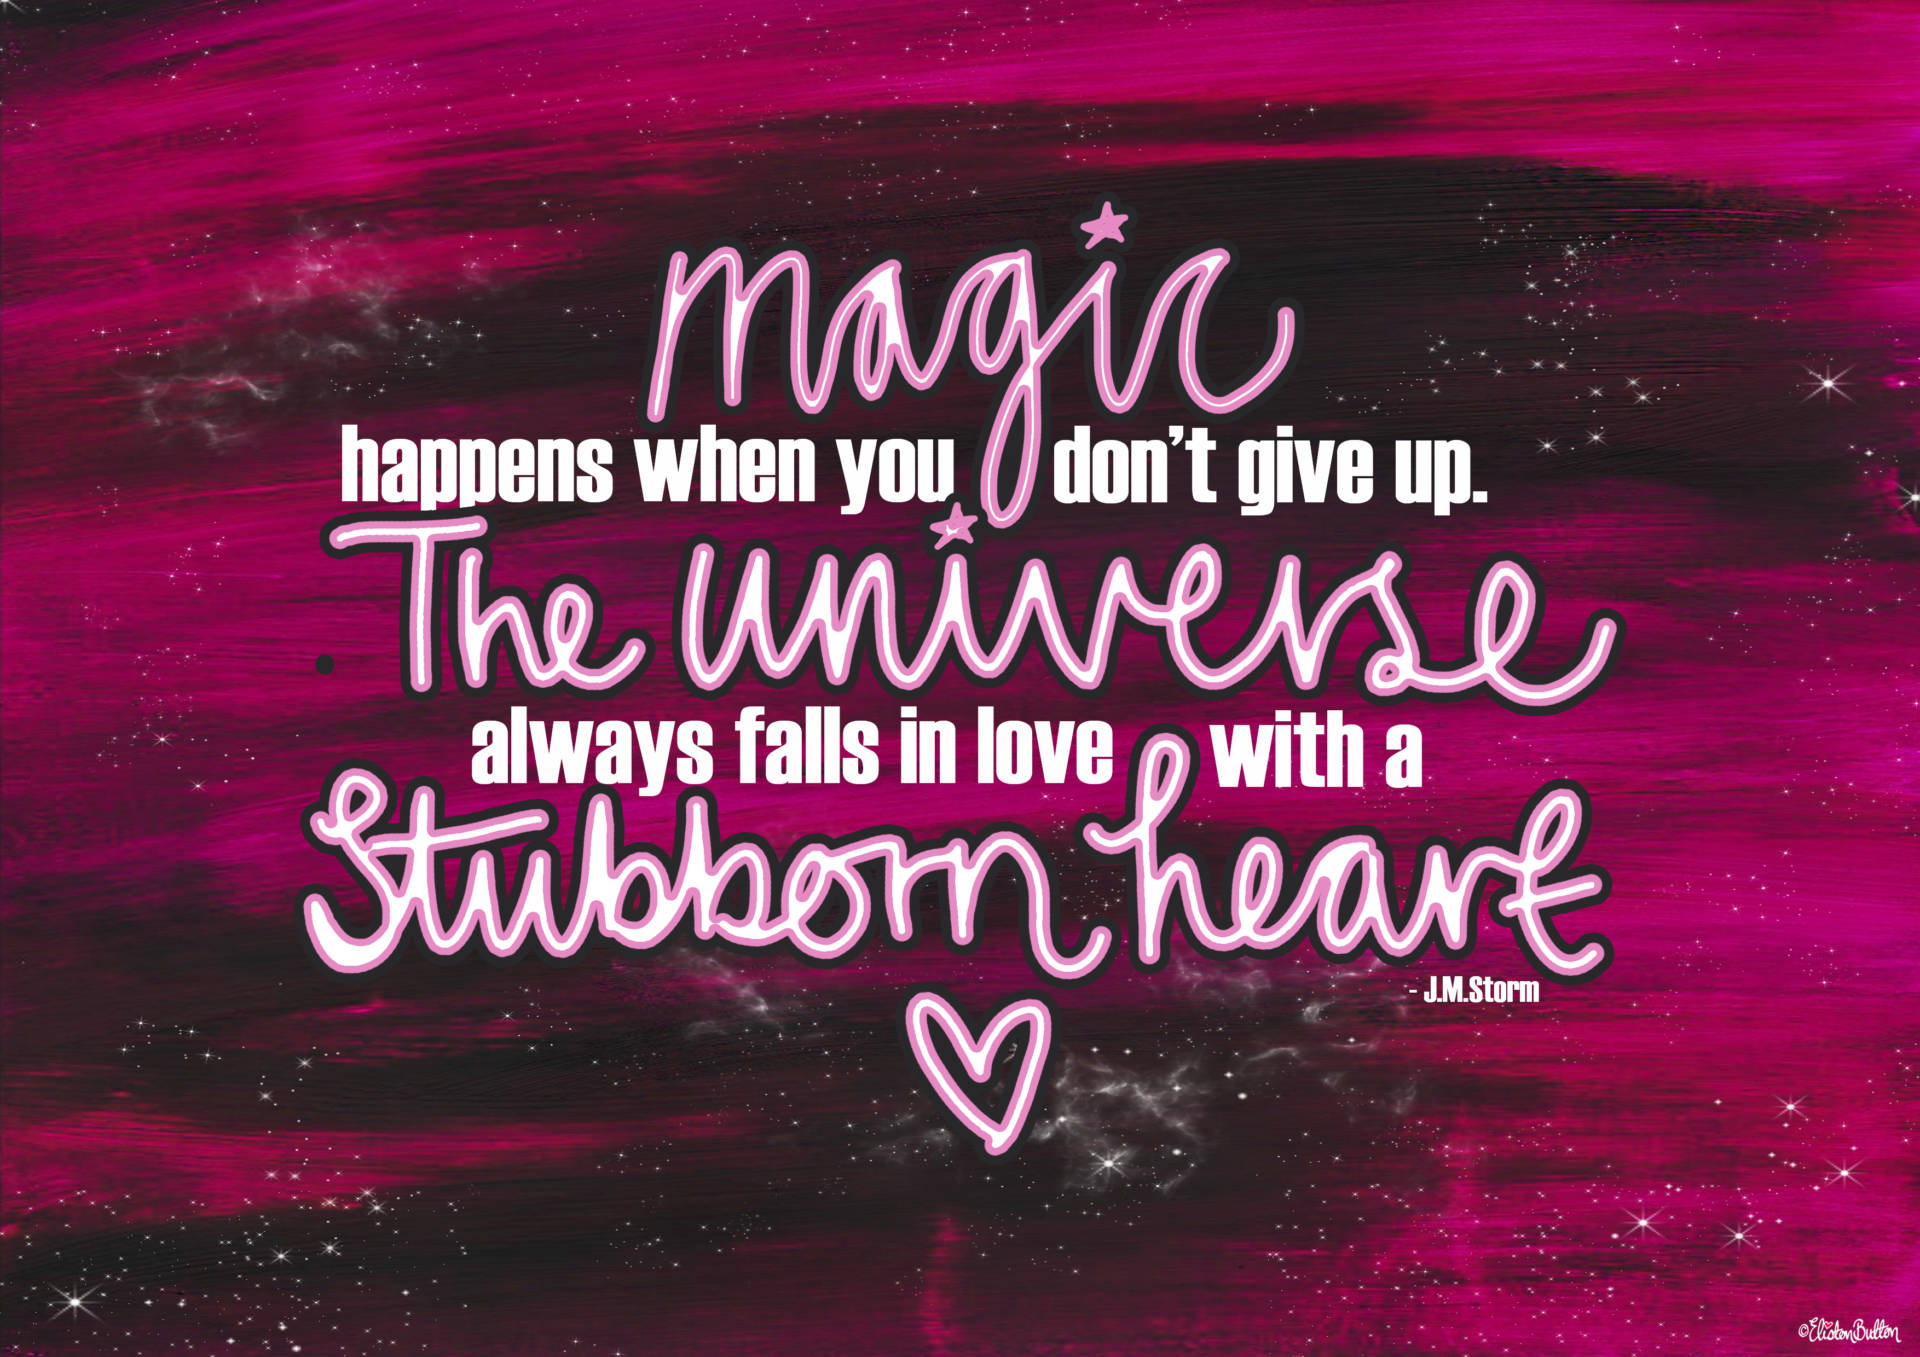 Magic Happens When You Don't Give Up - JM Storm Quote by Eliston Button - Eliston Button is Four! at www.elistonbutton.com - Eliston Button - That Crafty Kid – Art, Design, Craft & Adventure.